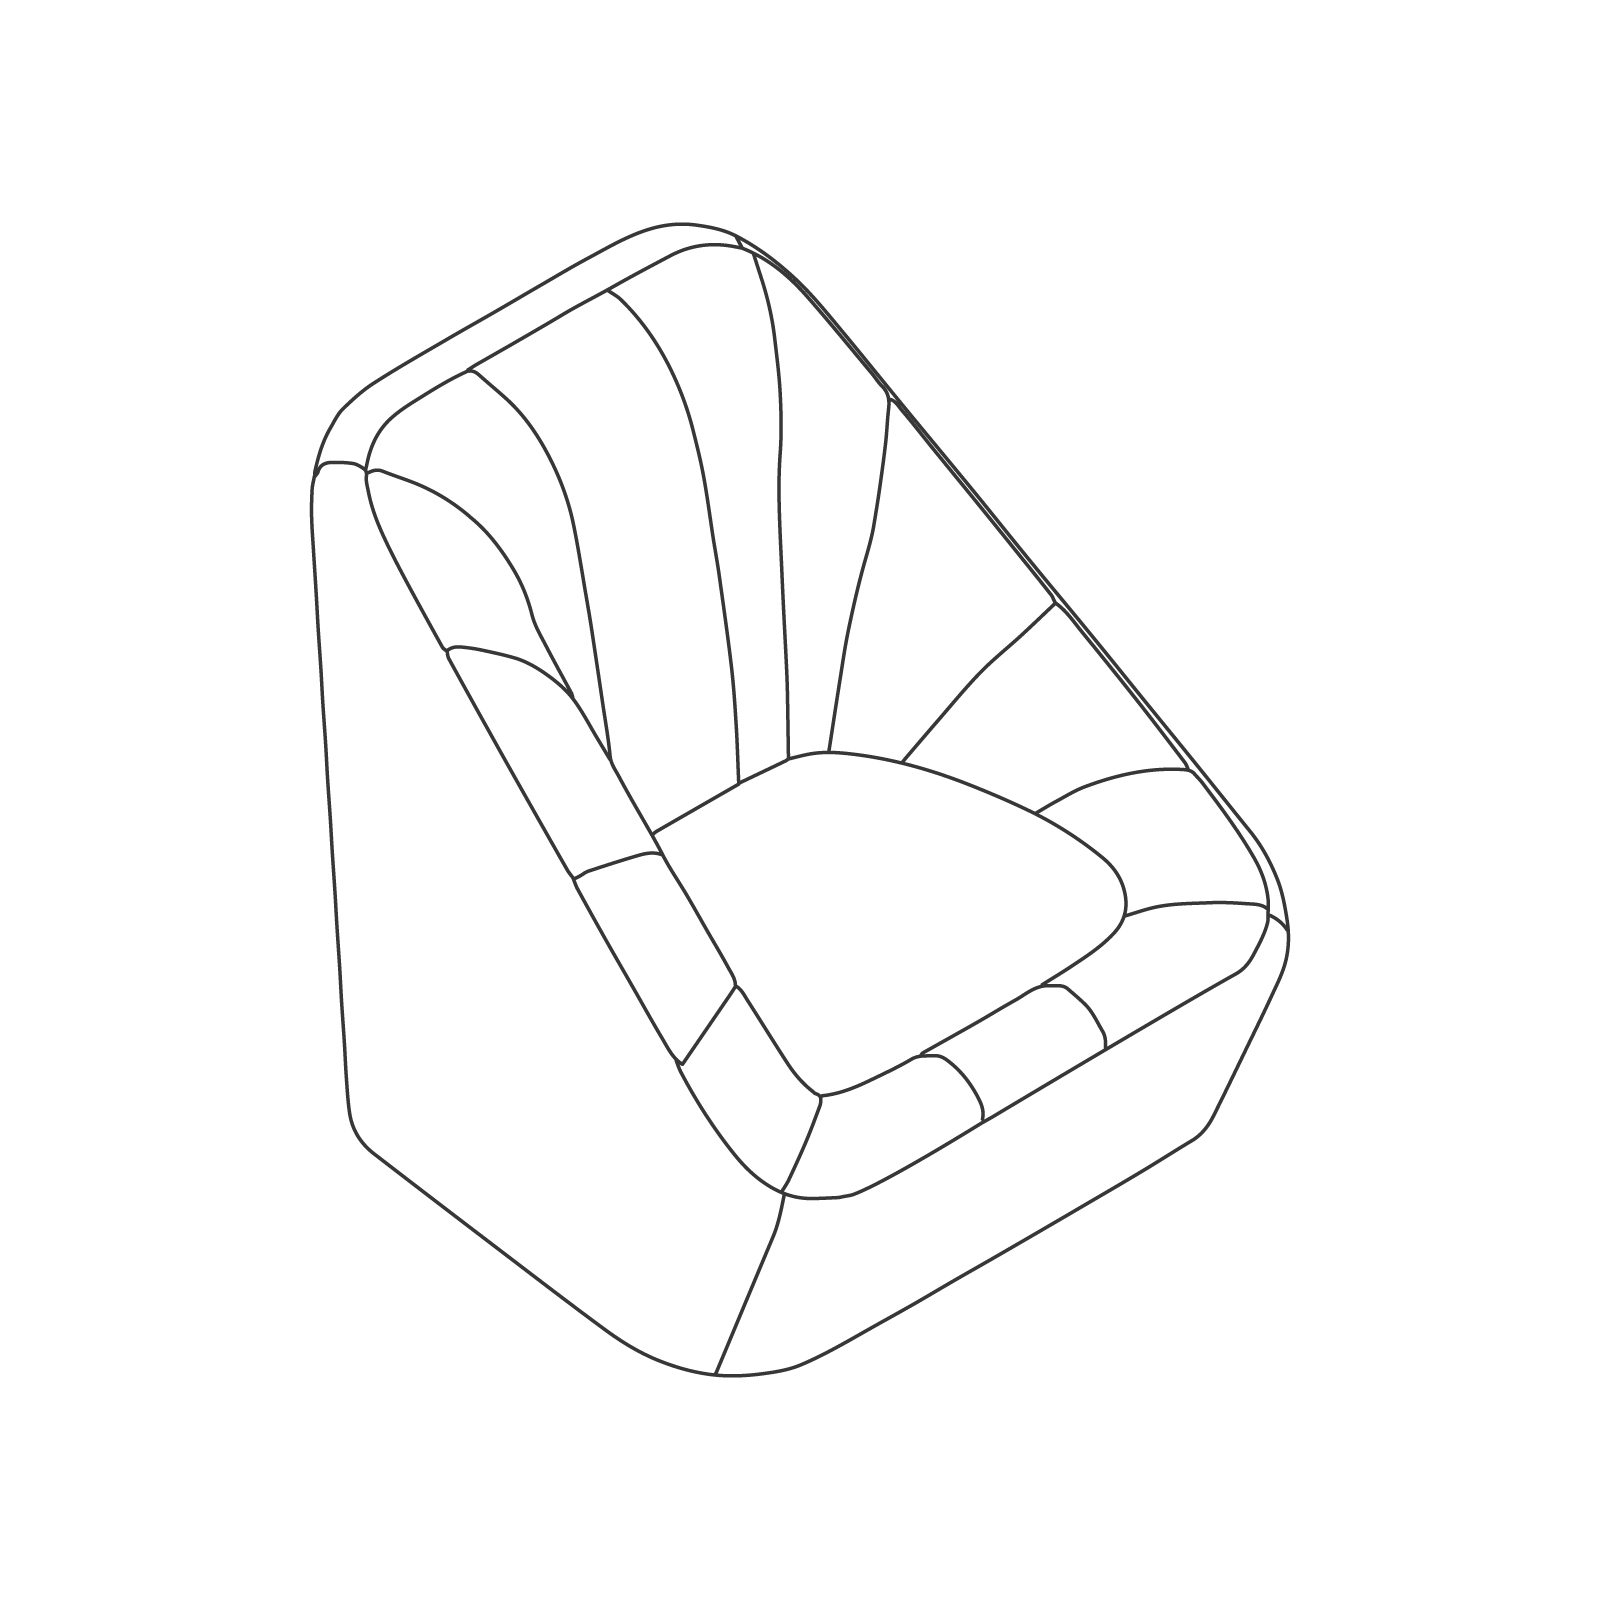 A line drawing of Fiji Chair.